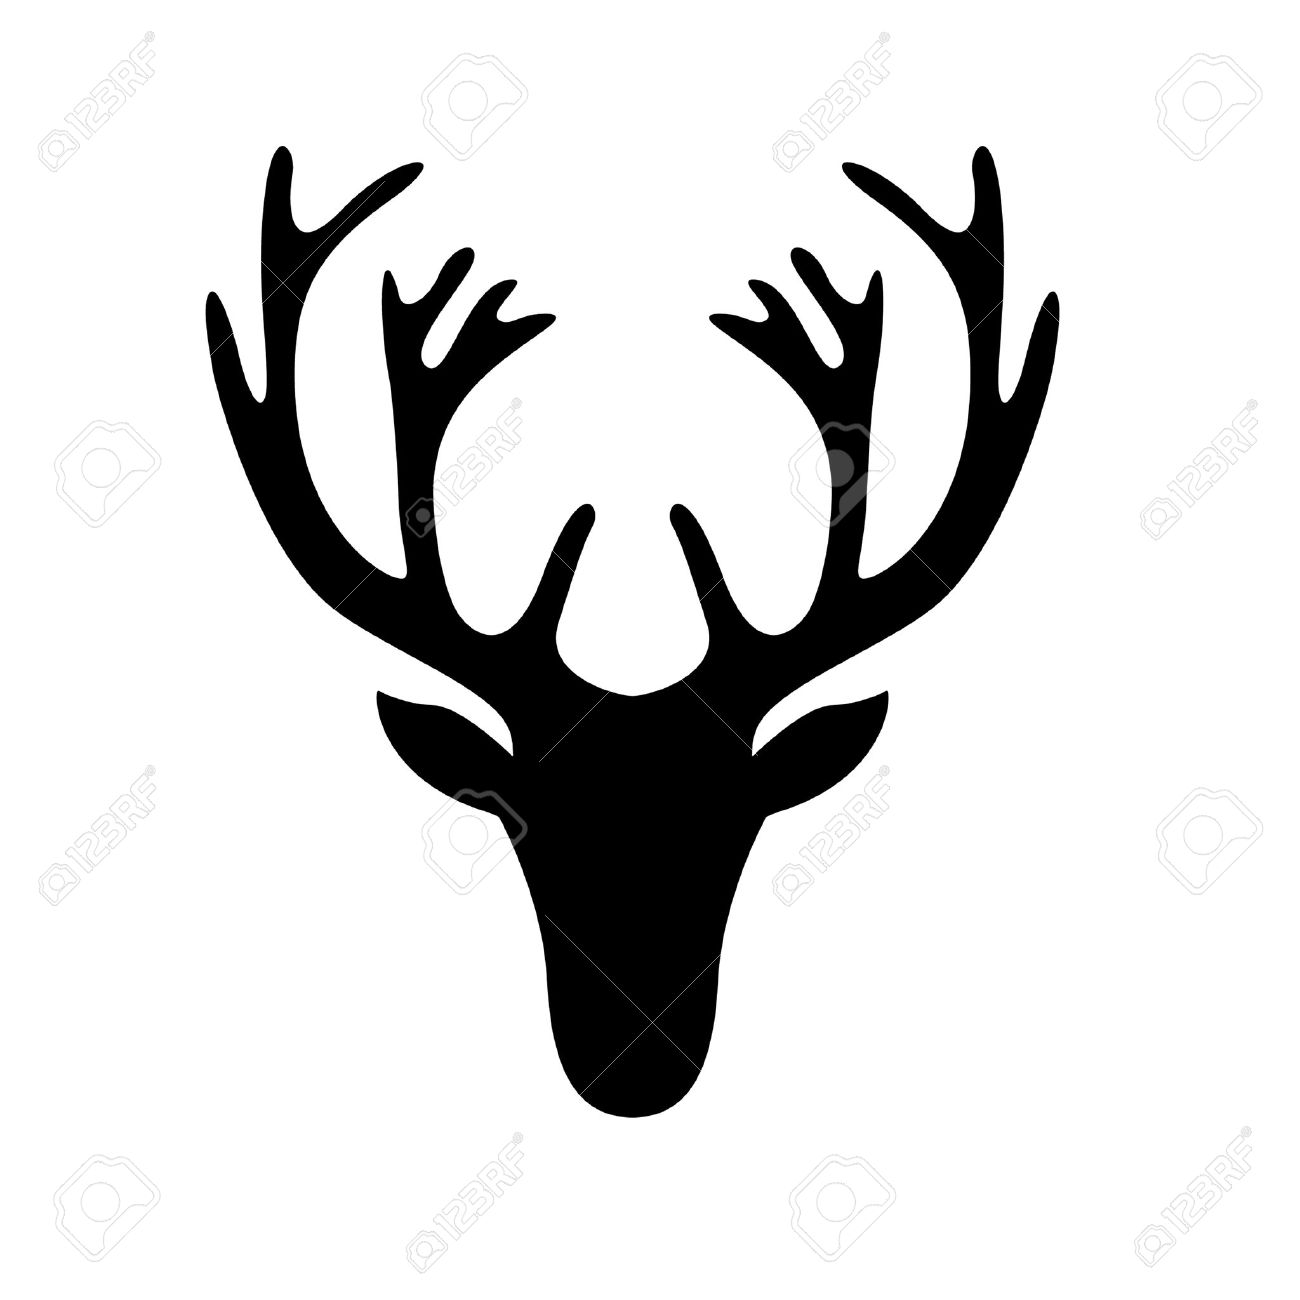 illustration of a deer head silhouette isolated on white royalty rh 123rf com Large Printable Deer Heads Silhouettes Large Printable Deer Heads Silhouettes